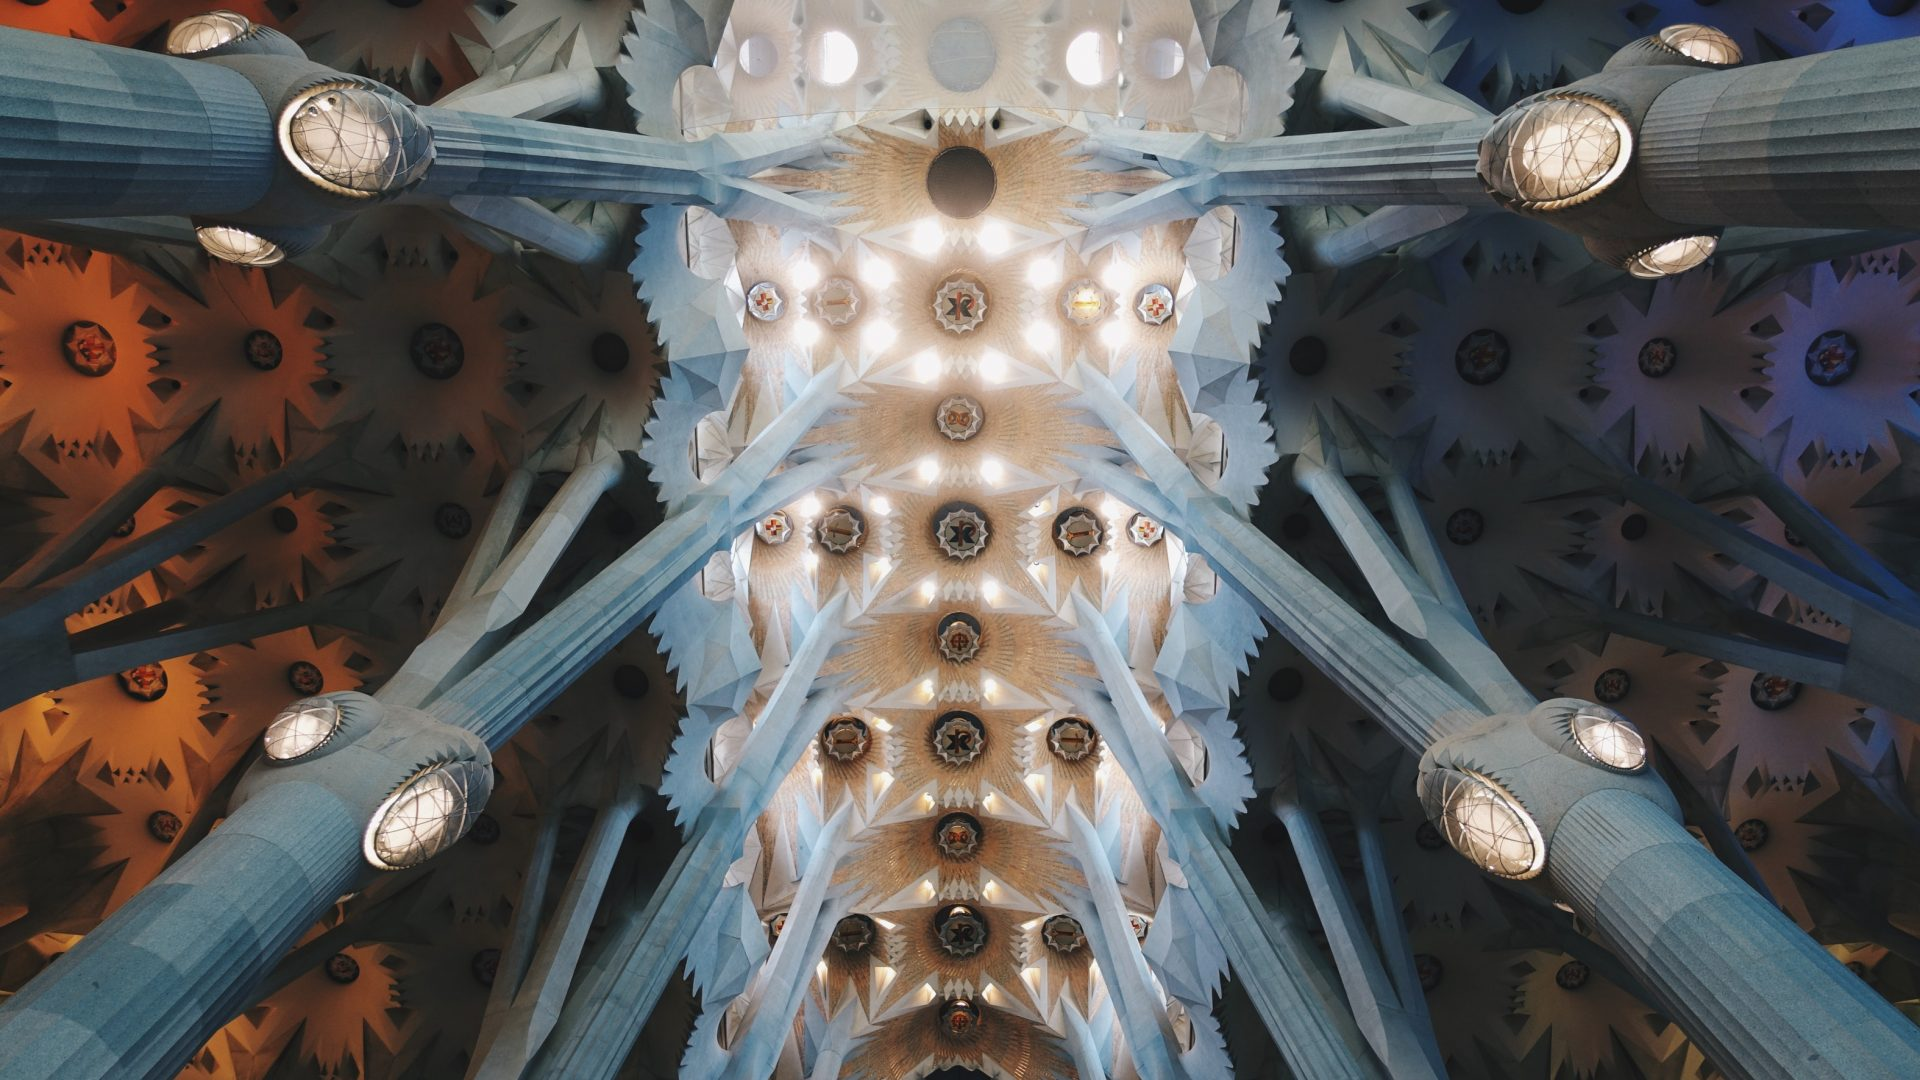 Ceiling of Sagrada Familia - architecture of Barcelona